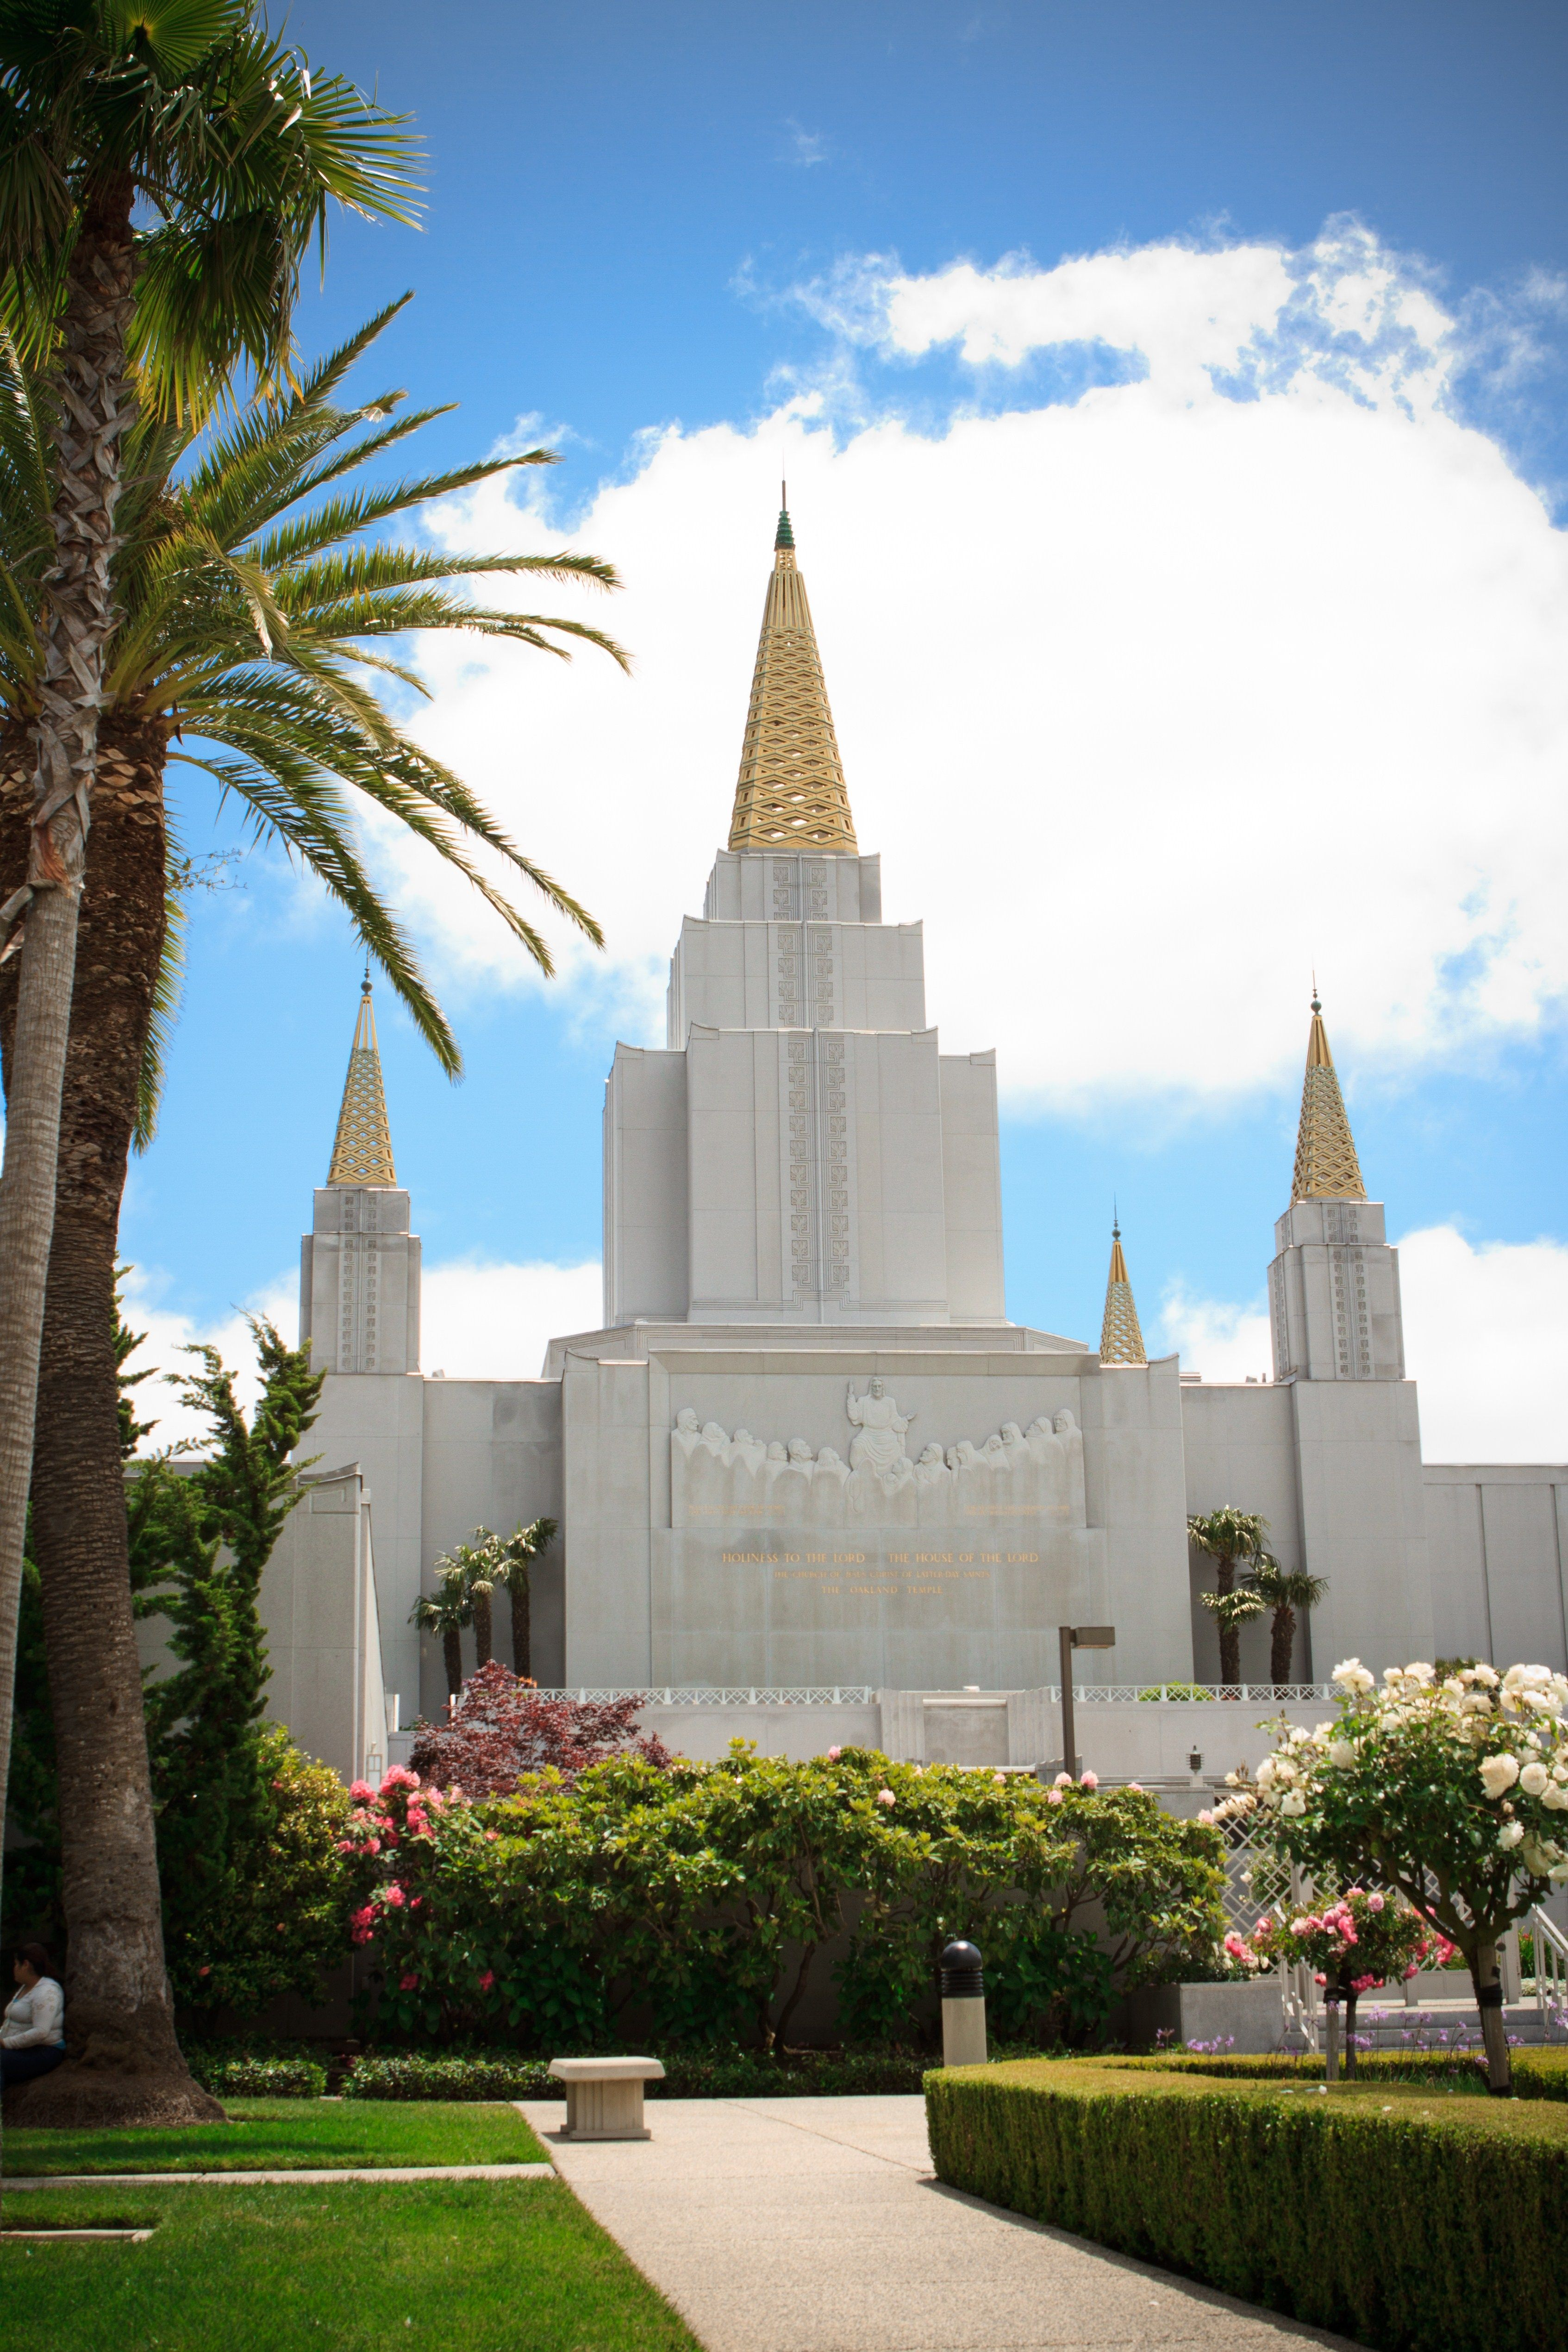 The Oakland California Temple, including scenery.